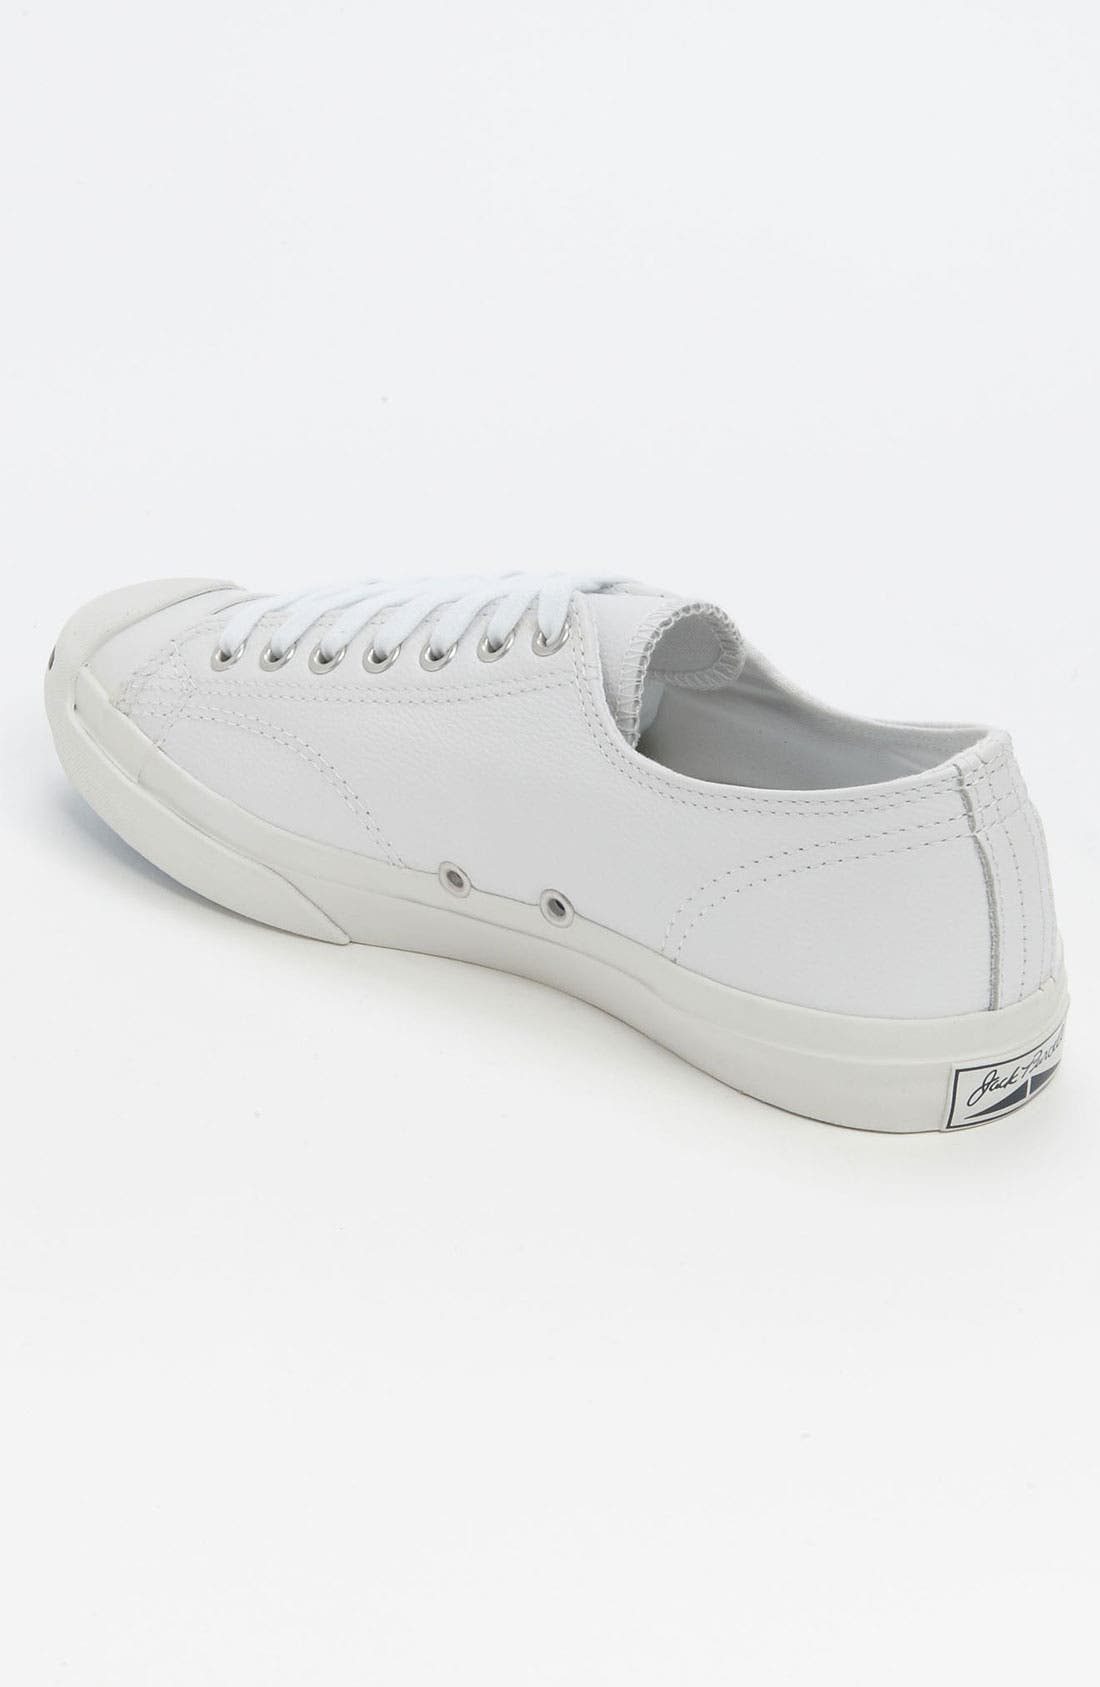 'Jack Purcell' Leather Sneaker,                             Alternate thumbnail 9, color,                             WHITE/ NAVY